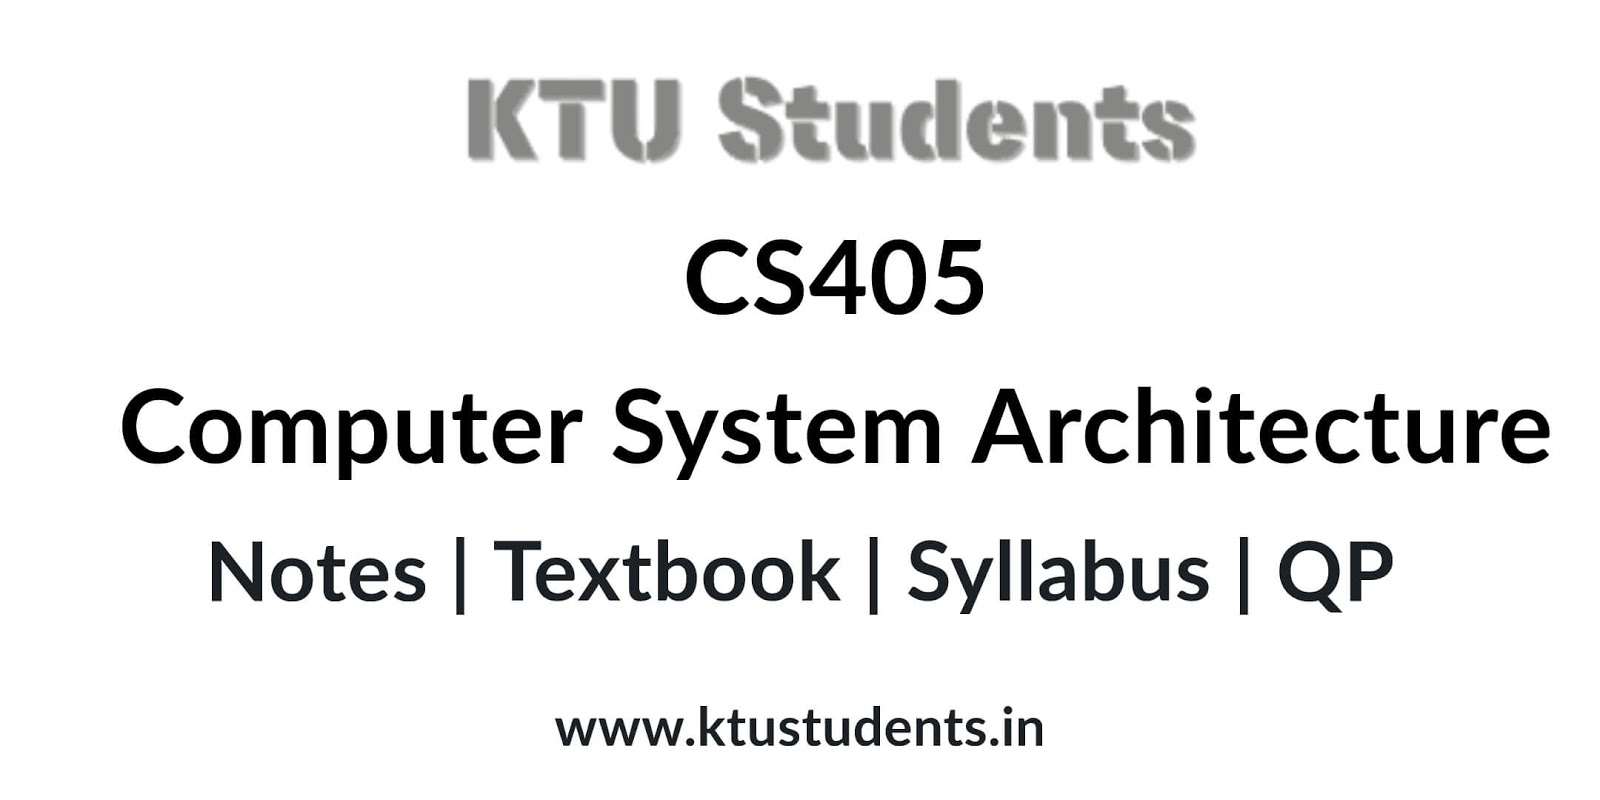 CS405 Computer System Architecture - Notes | Textbook